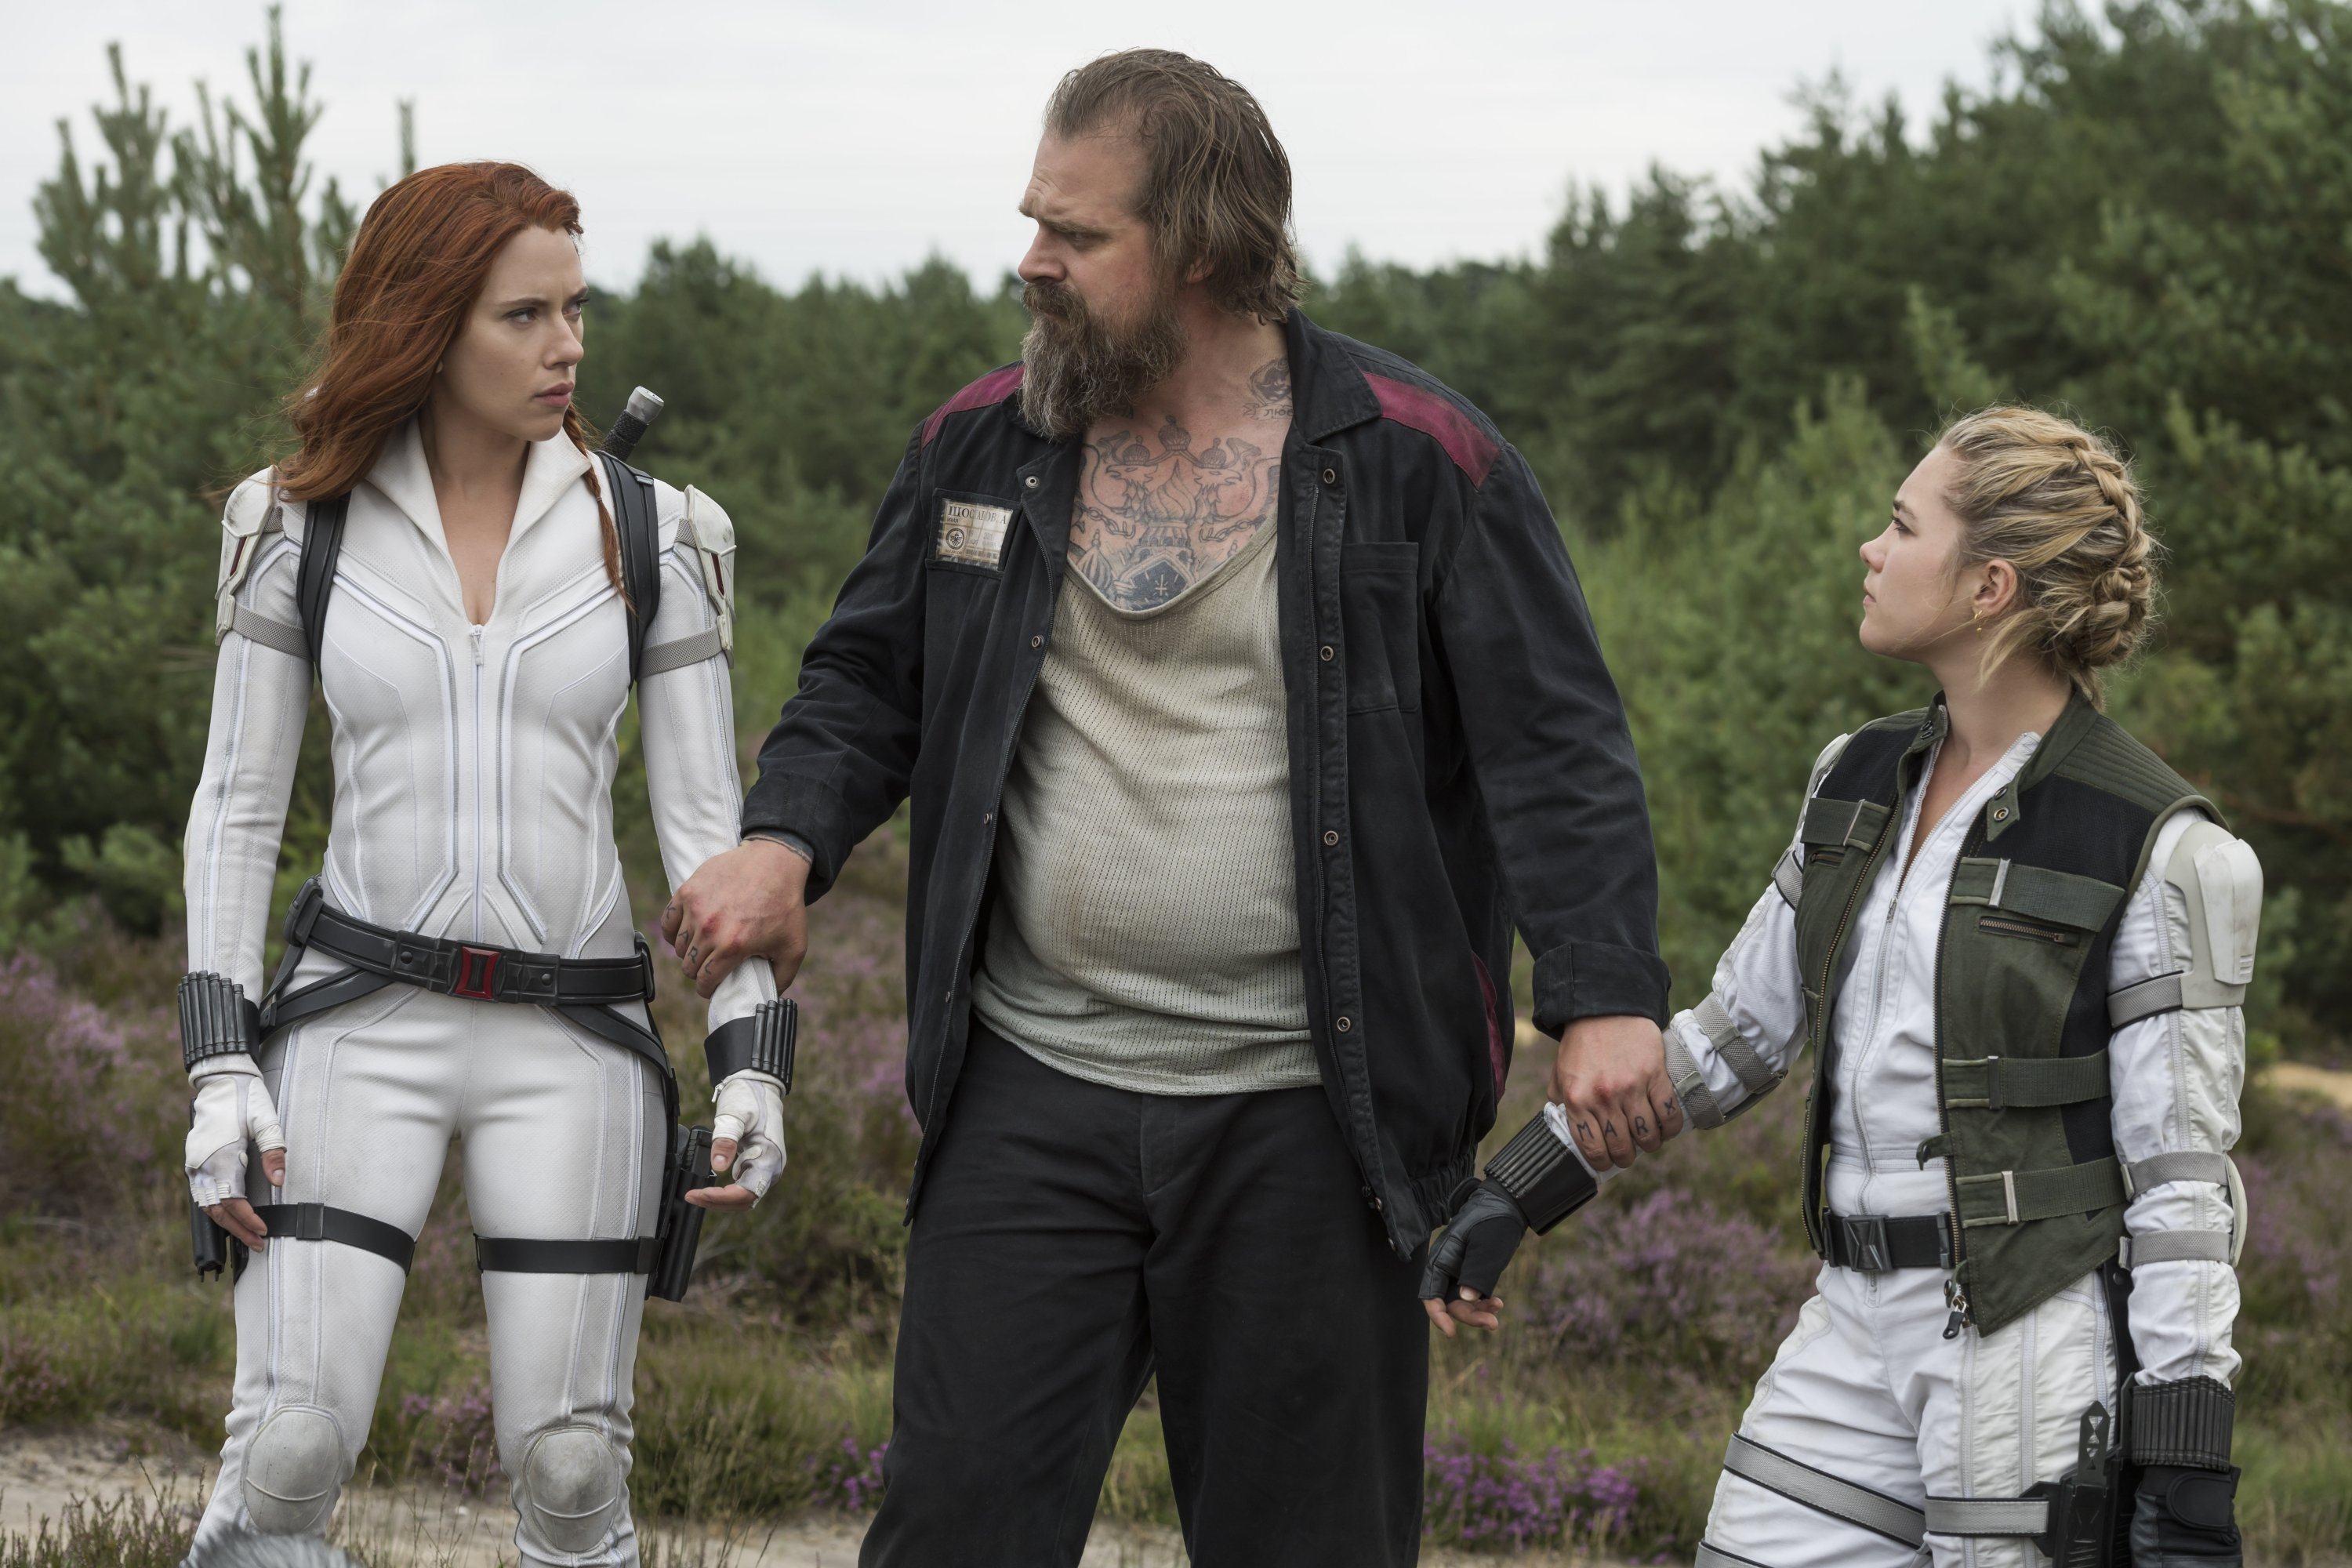 David Harbour (C) holds the hands of Scarlett Johansson (L) and Florence Pugh in a scene from Marvel superhero film 'Black Widow.' (Disney via AP)